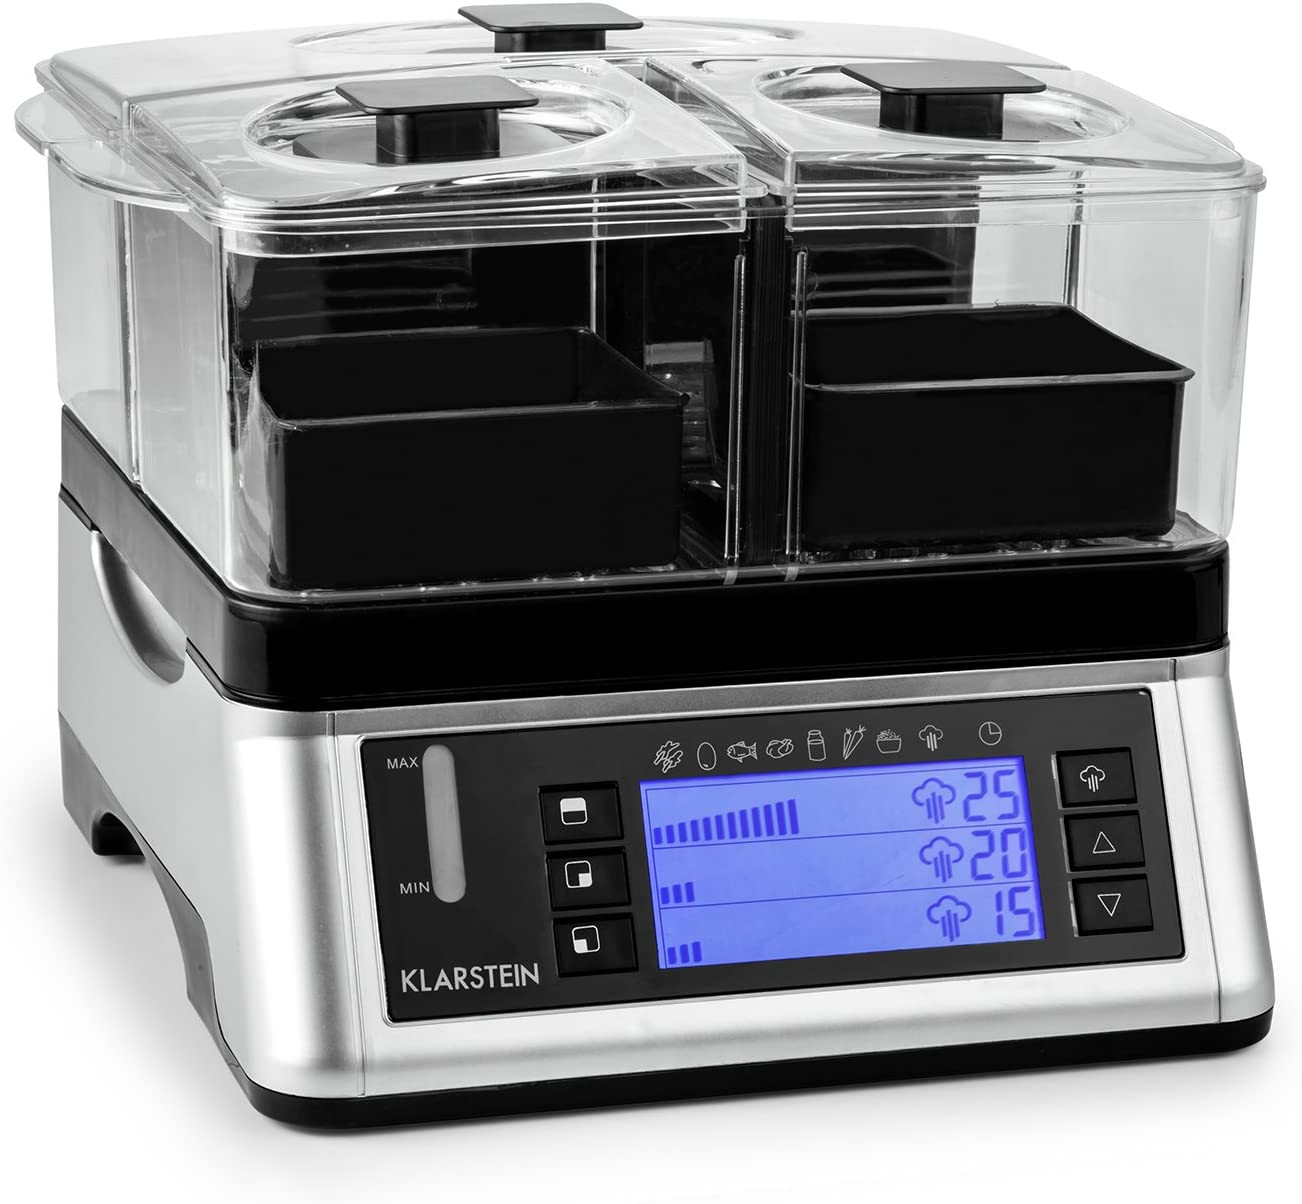 KLARSTEIN Electric Food Steamer